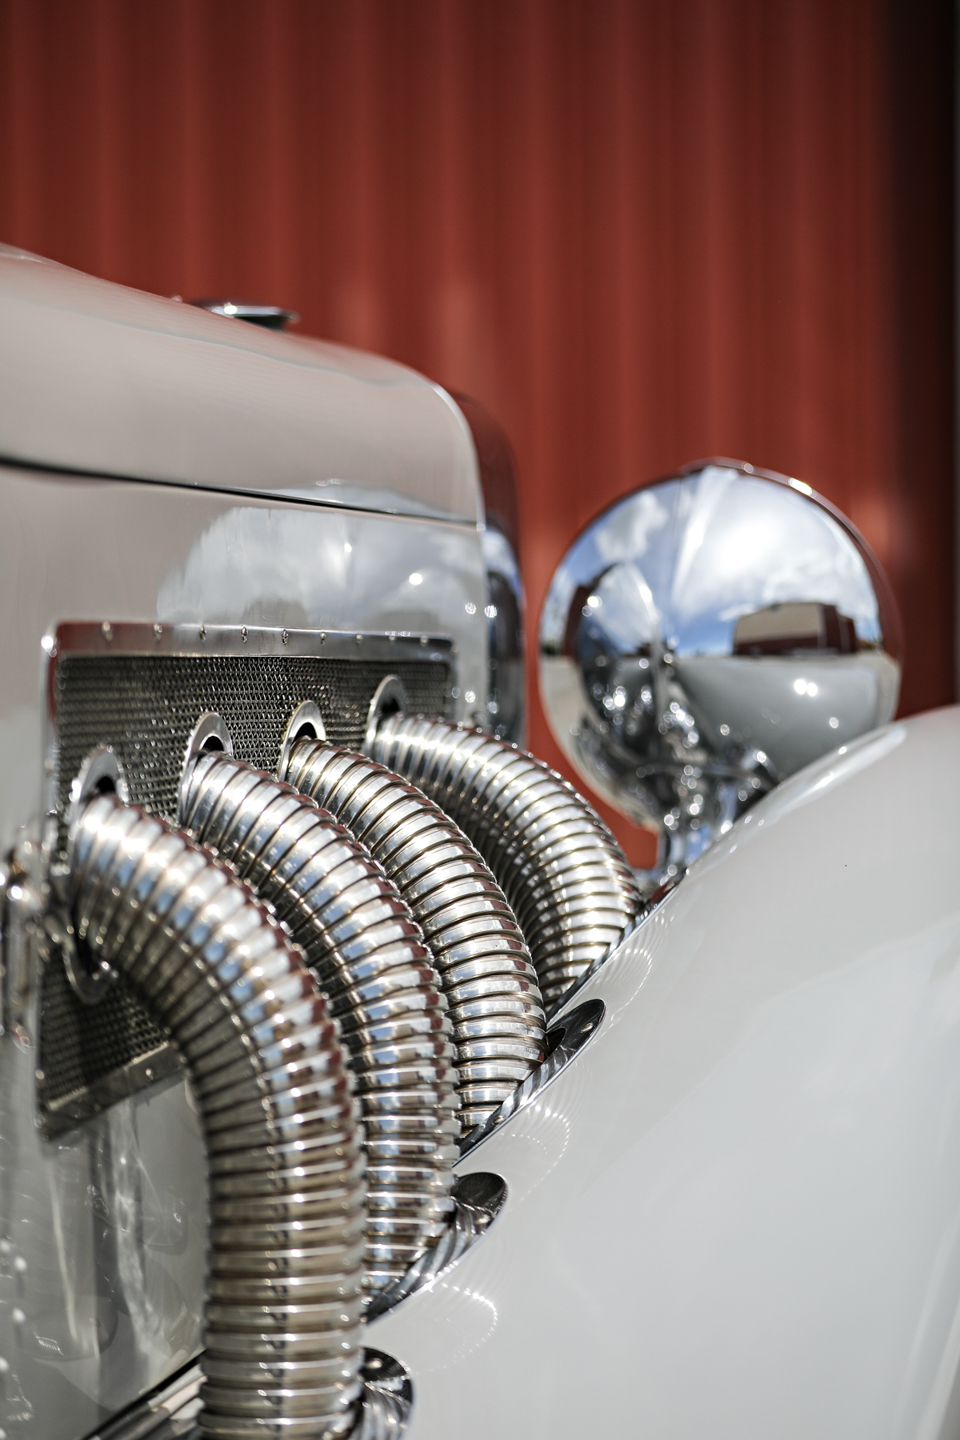 1935 Duesenberg SSJ exhaust pipes